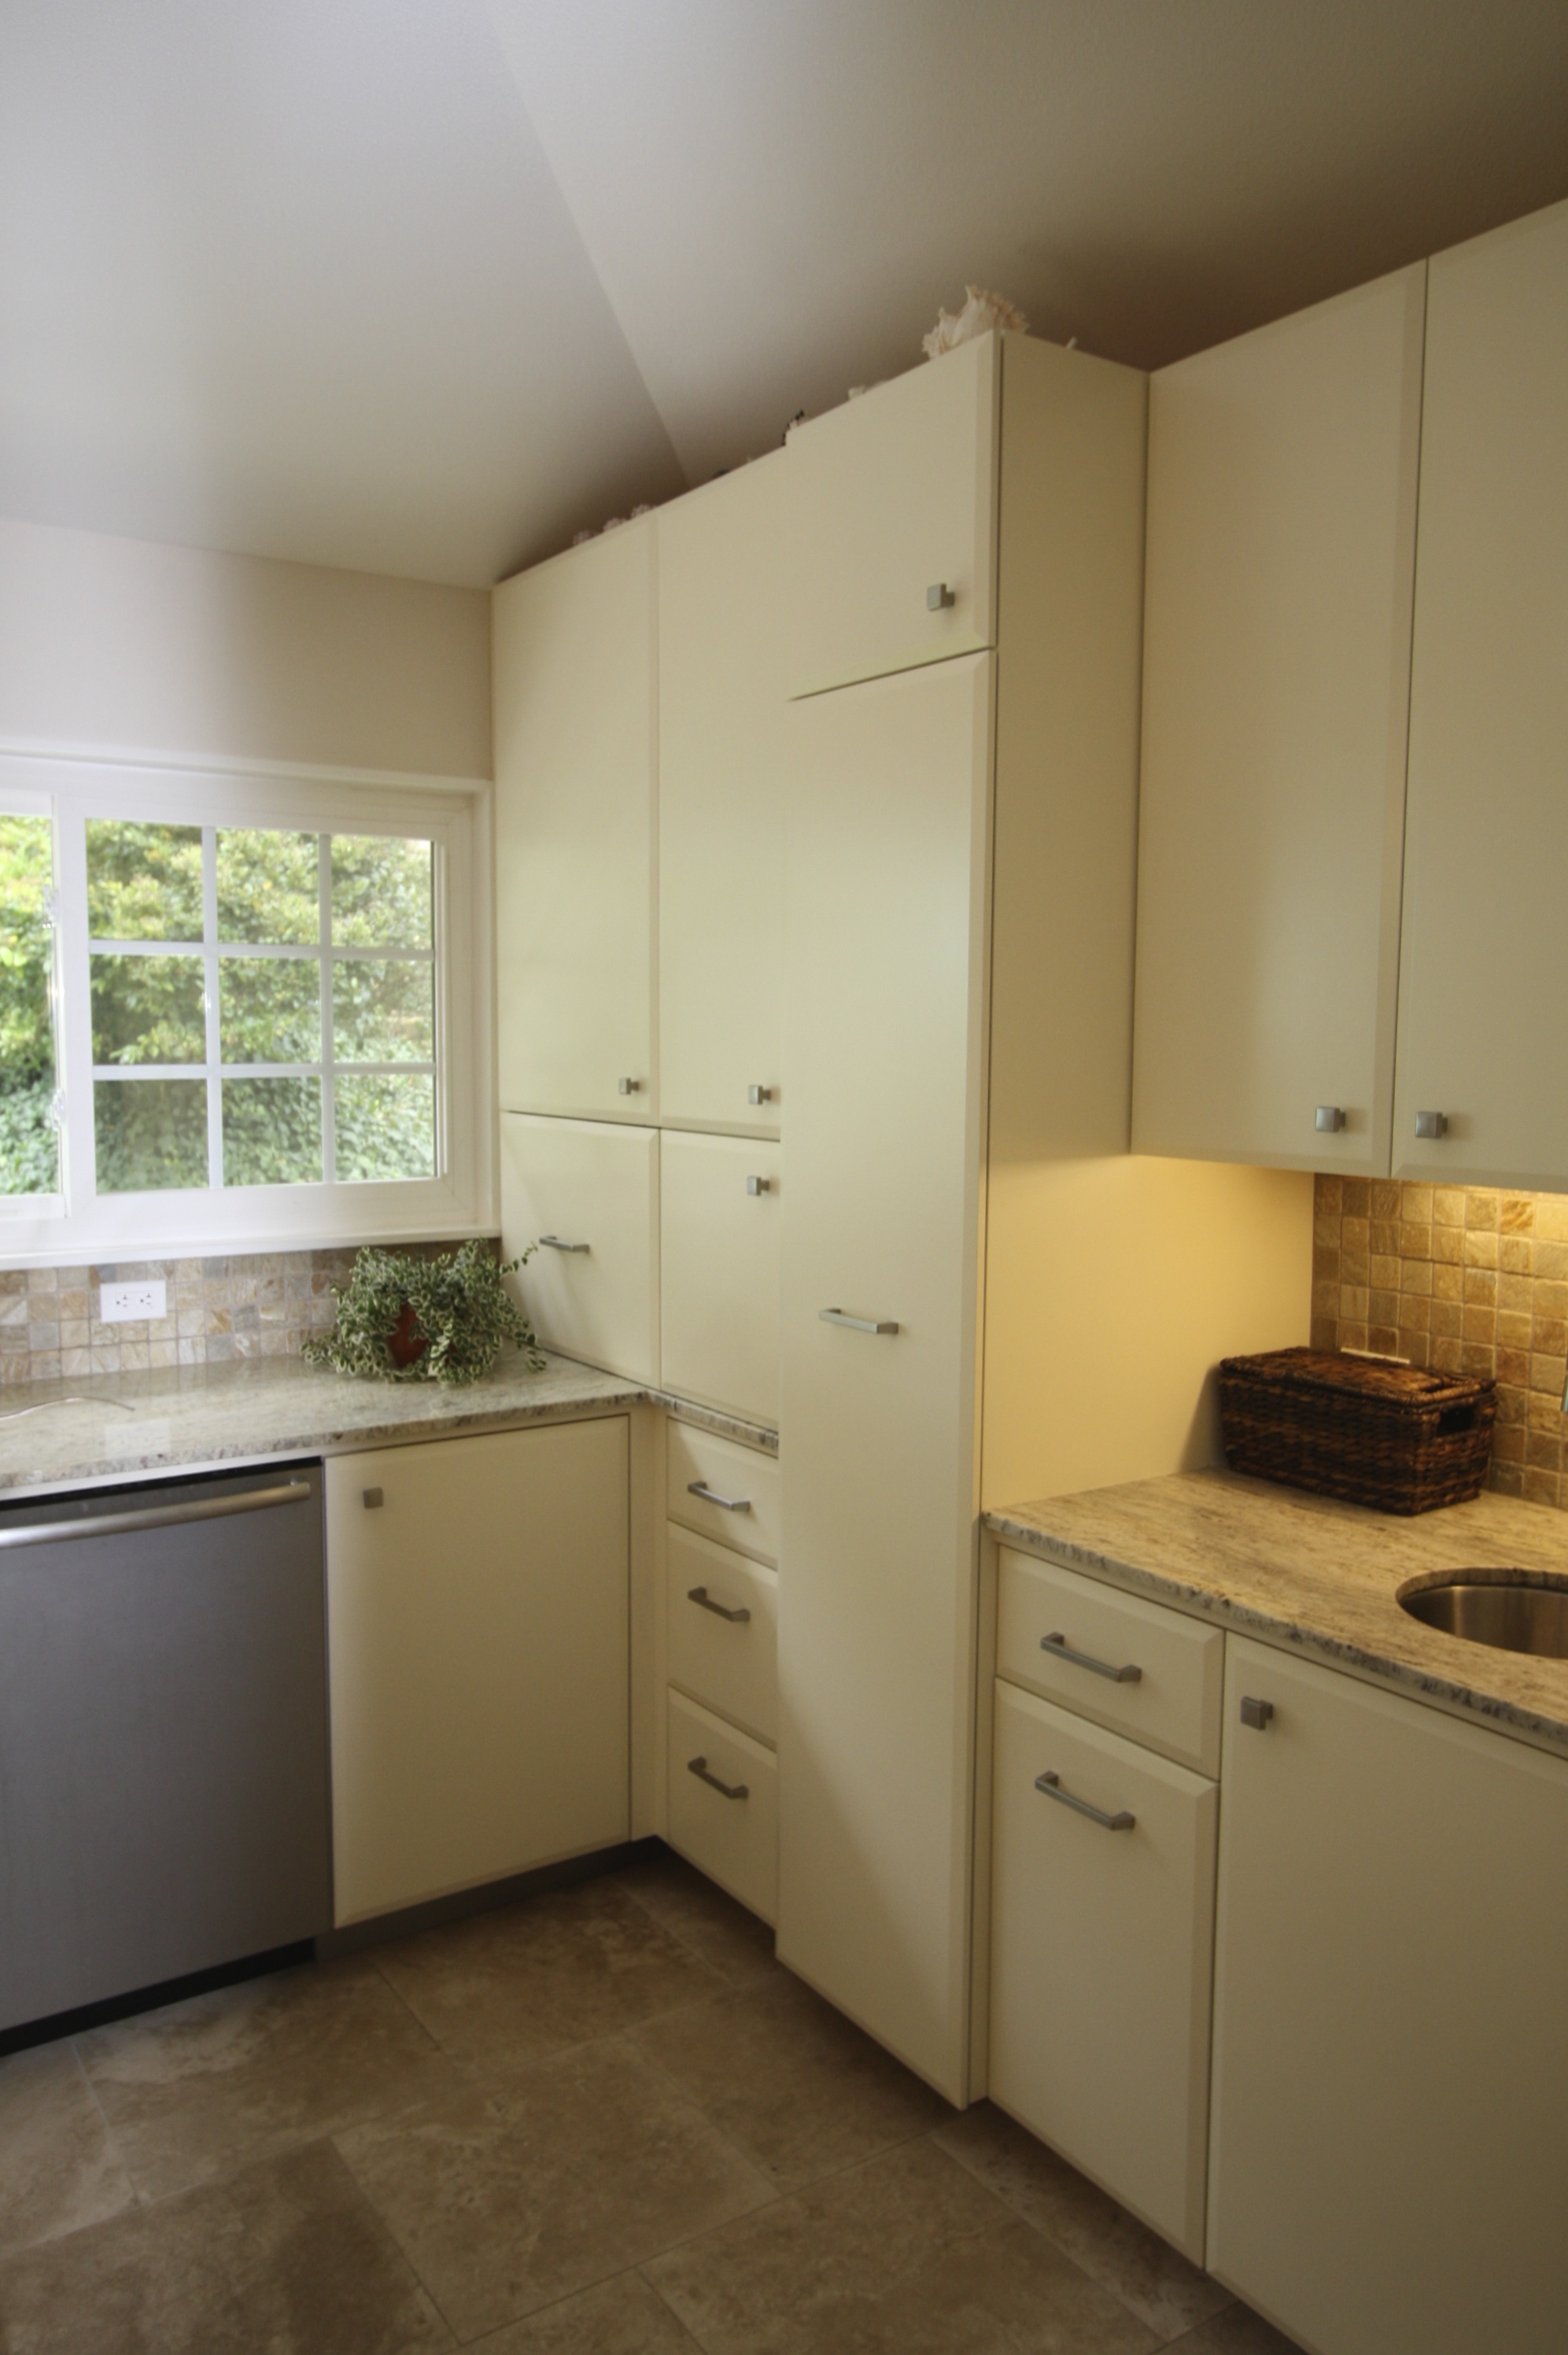 All cabinetry was custom built by Artistic Freedom Designs, a local green cabinet shop.All wood is FSC certified and is finished with water based lacquer.